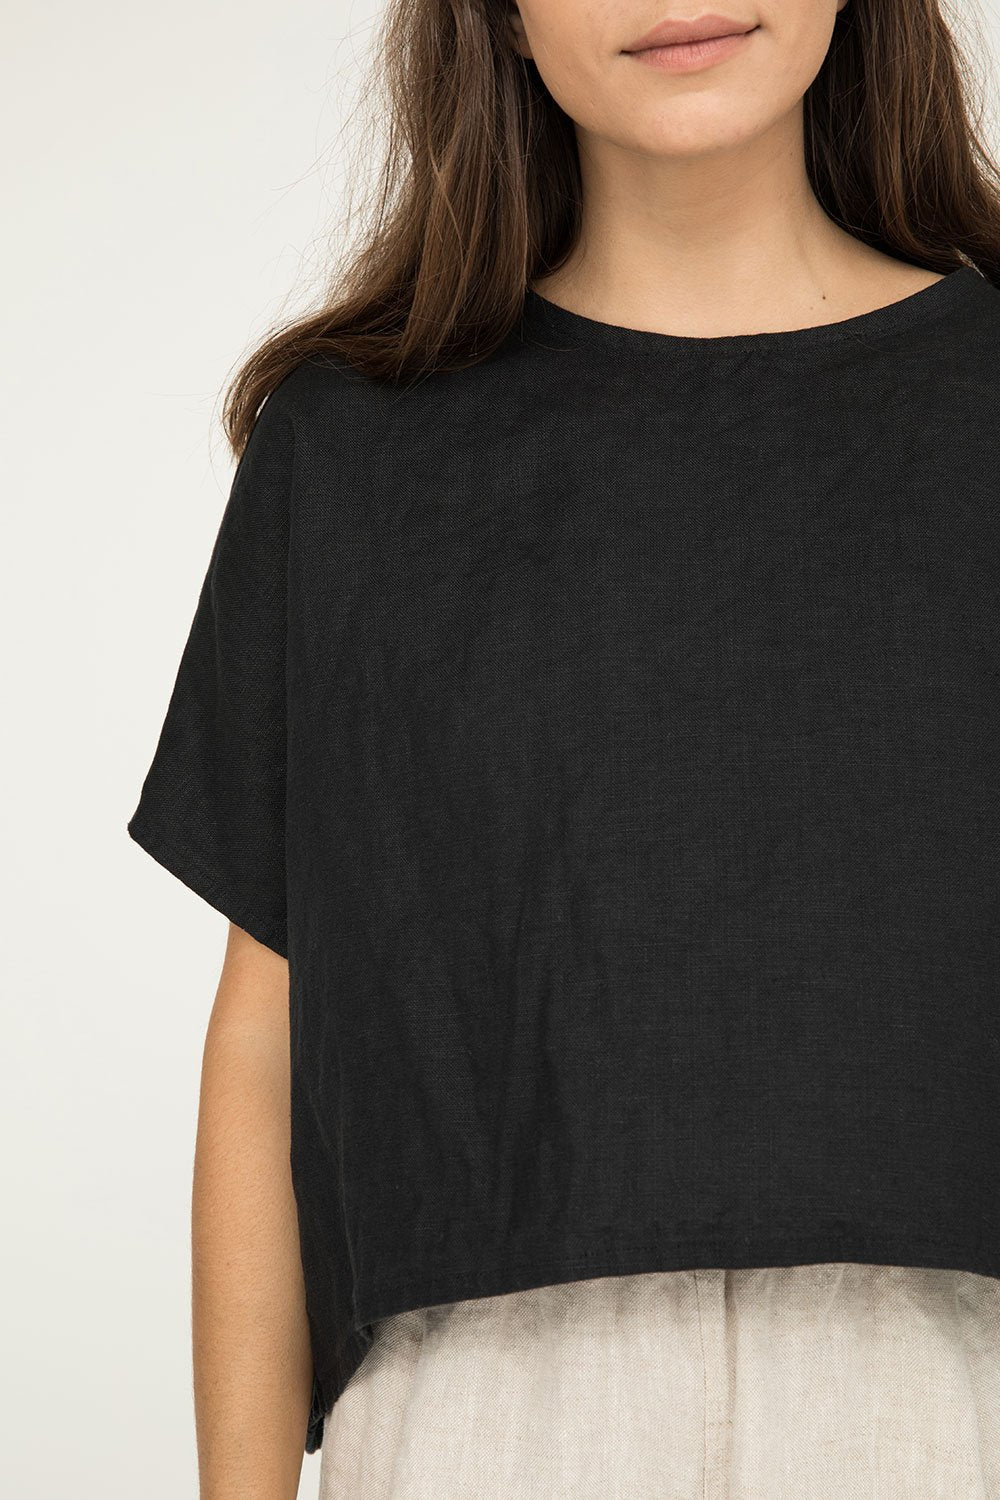 Linn Tee in Midweight Linen Black - Molly-OSM